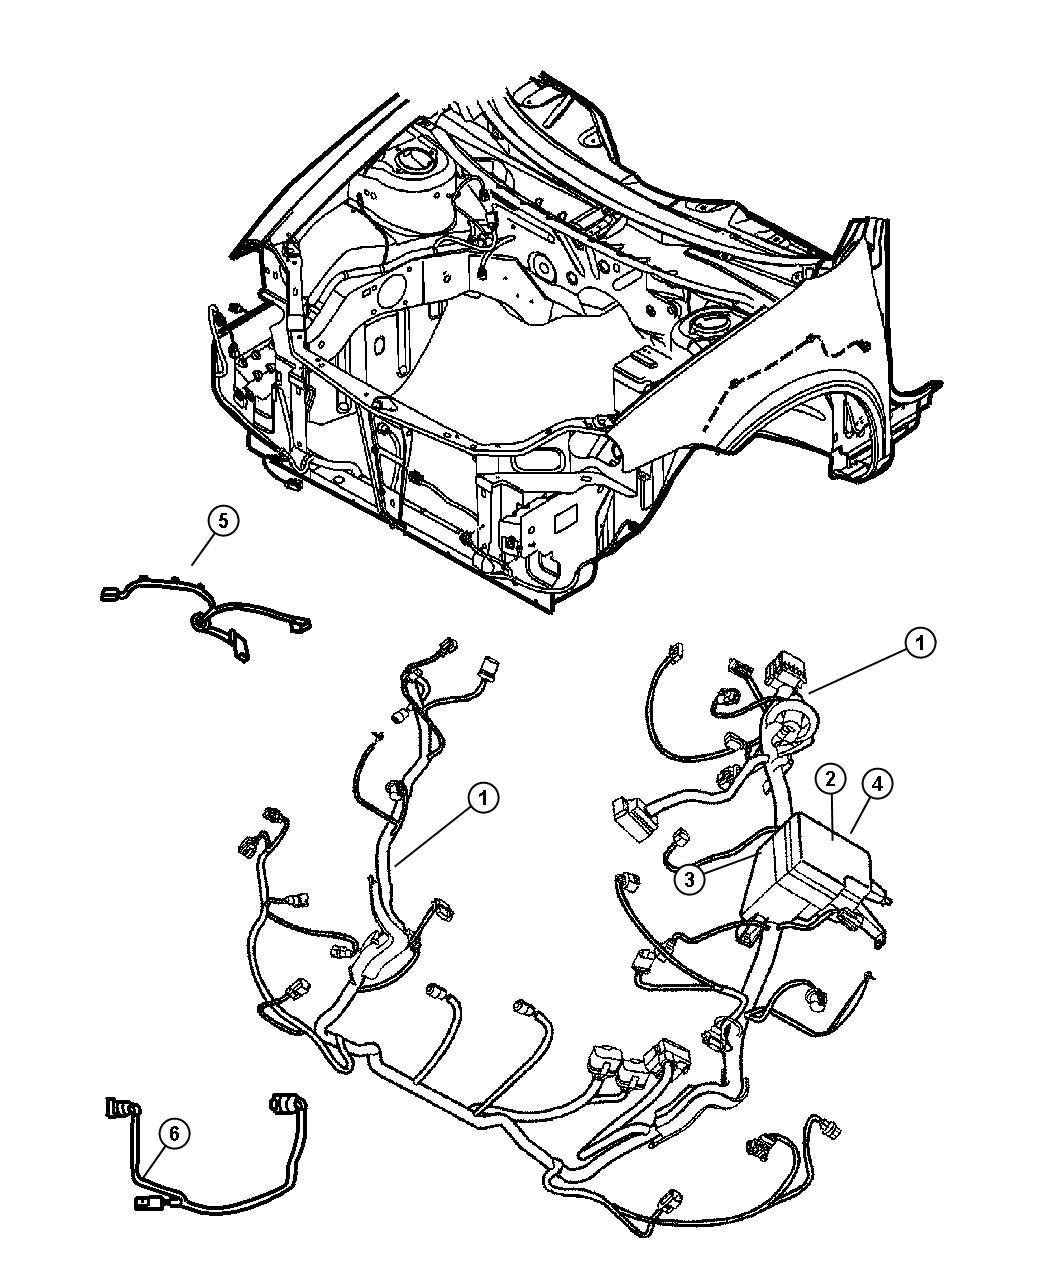 Dodge Neon Wiring Headlamp And Power Distribution